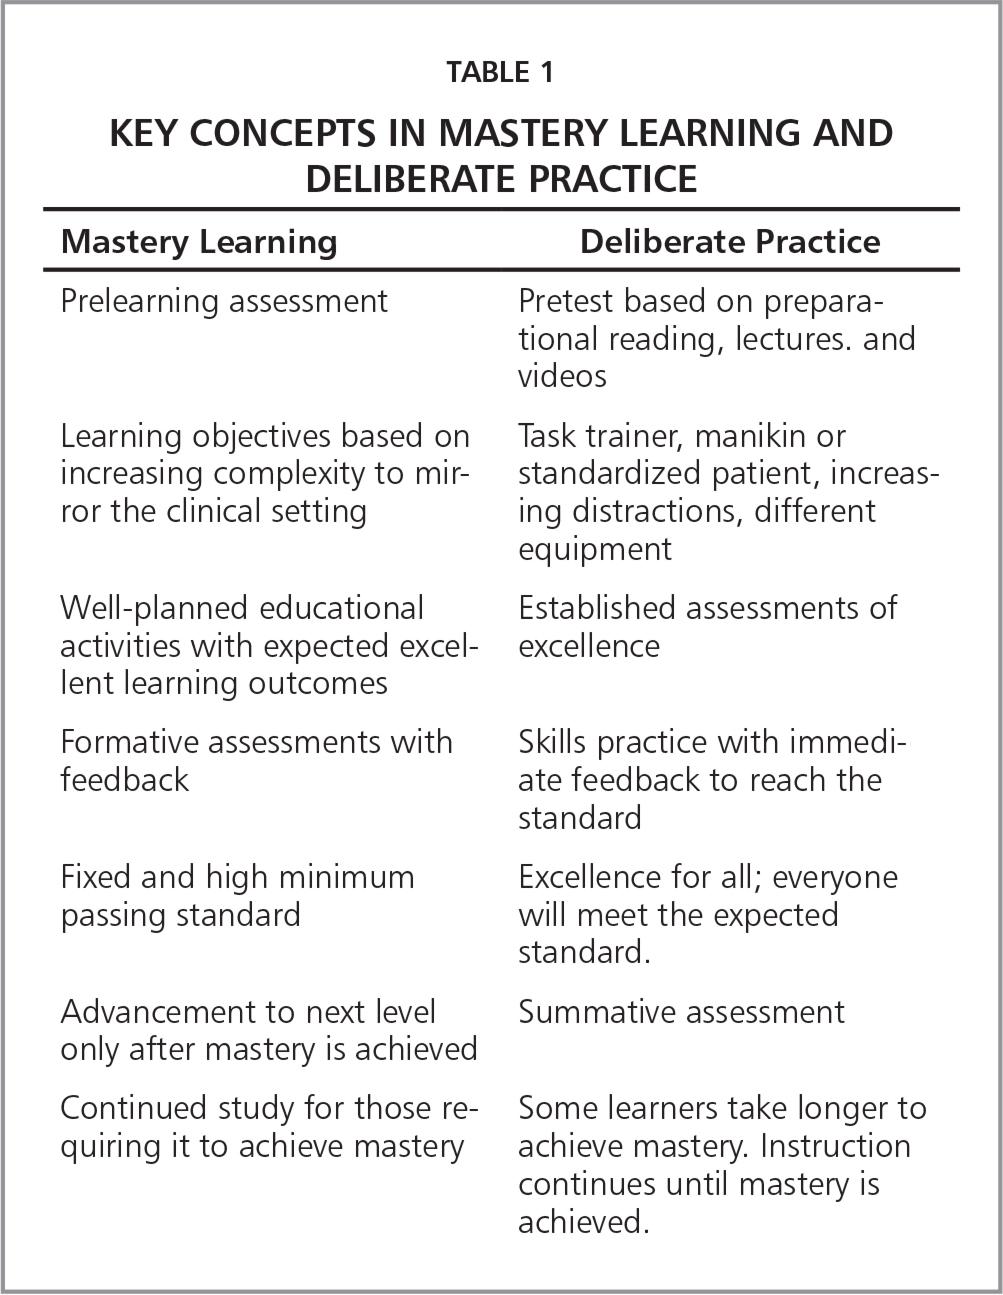 Key Concepts in Mastery Learning and Deliberate Practice